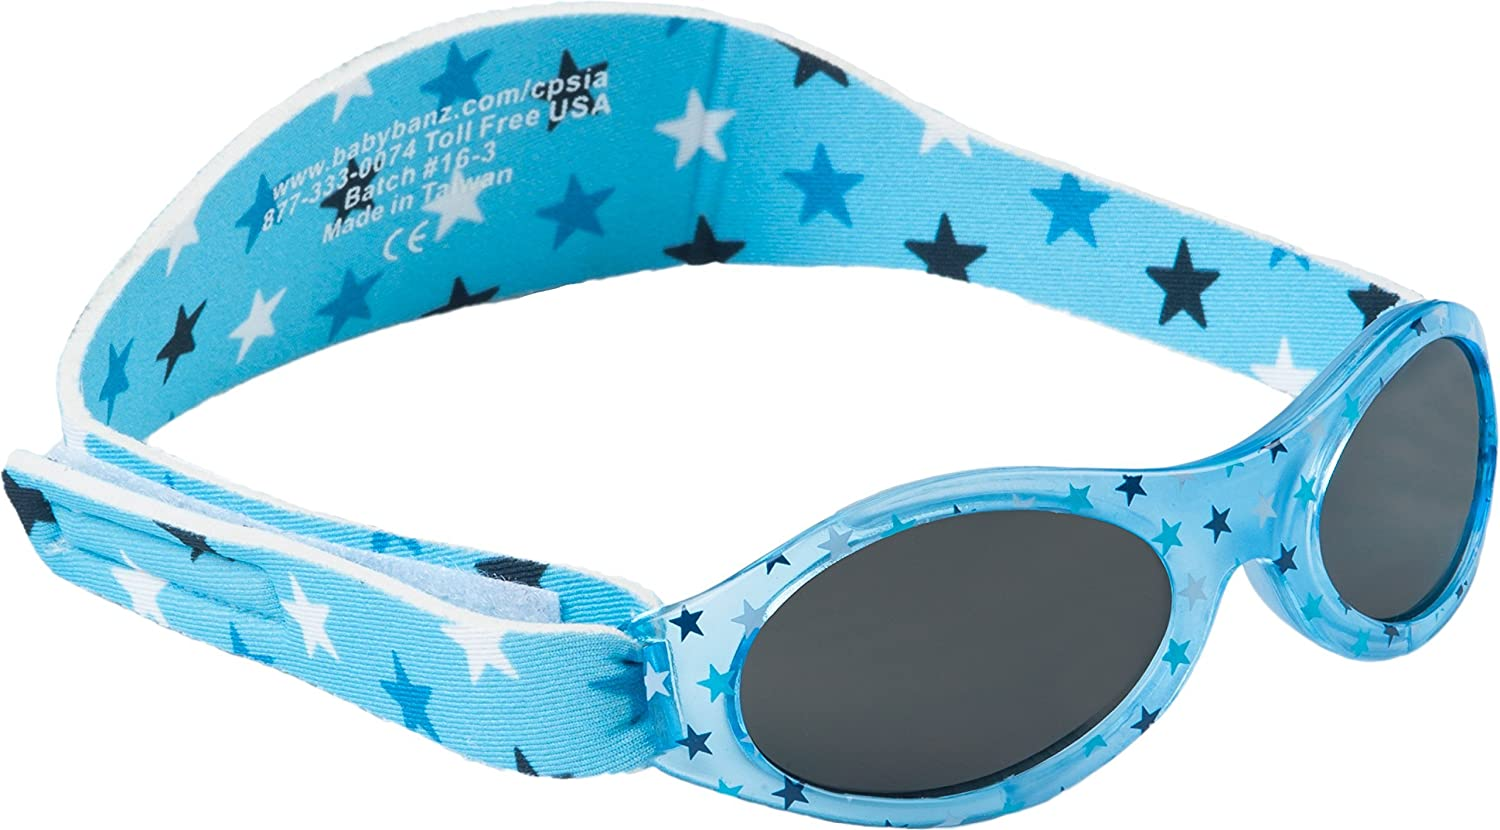 Blue Star BabyBanz sunglasses by Dooky 0 - 2 years 110616